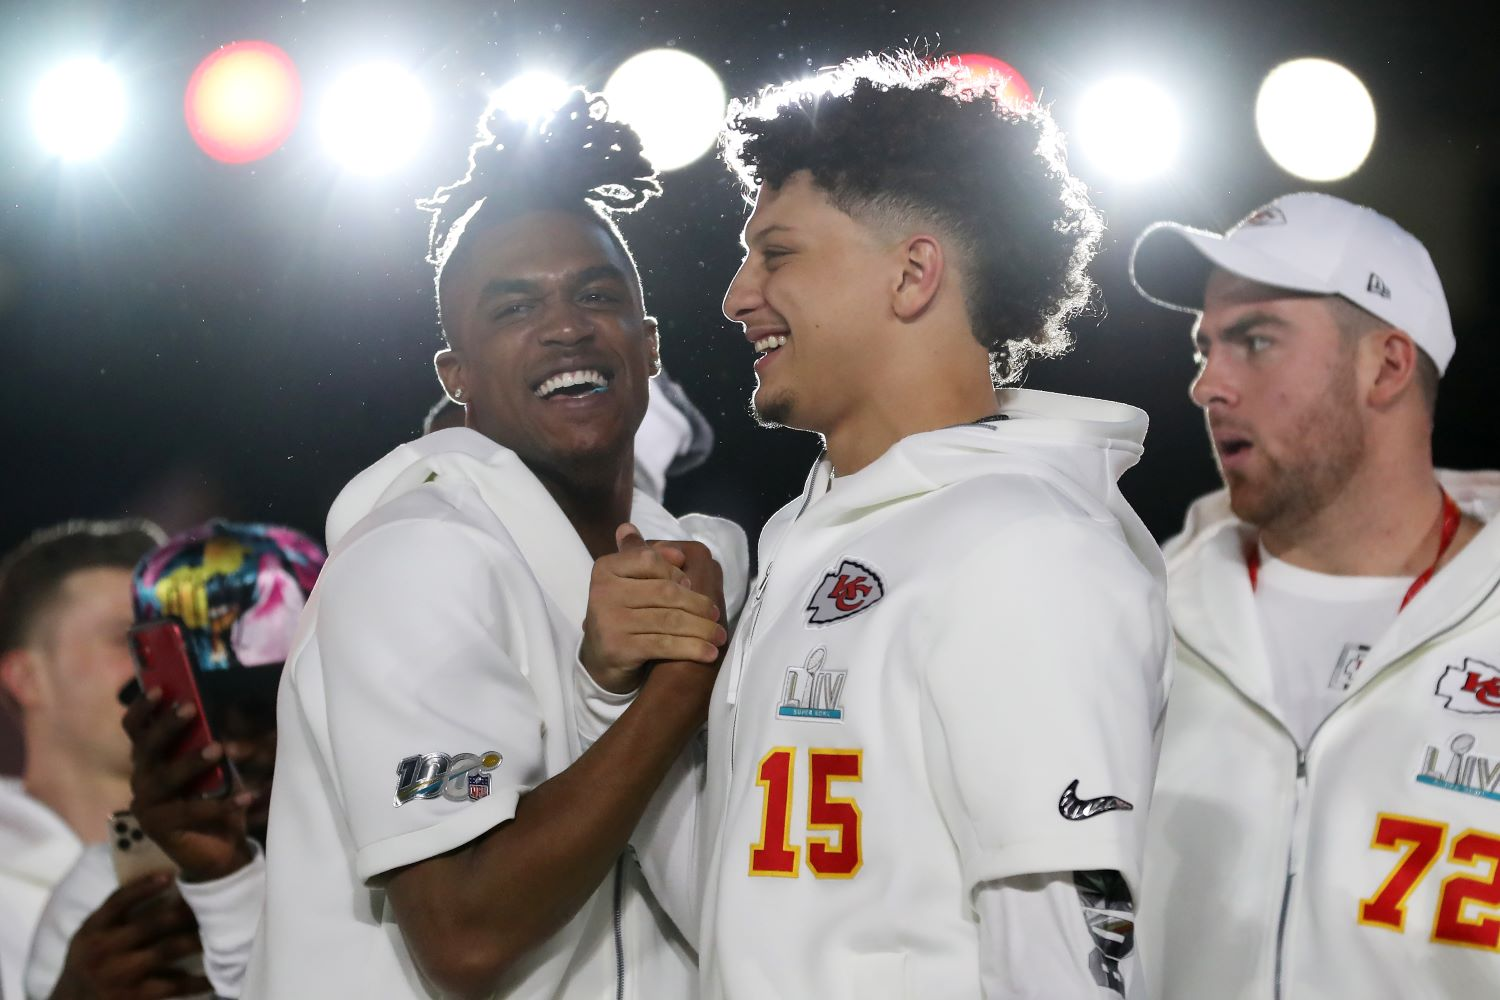 Patrick Mahomes Has a Key Weapon Arriving Just in Time for Super Bowl 55